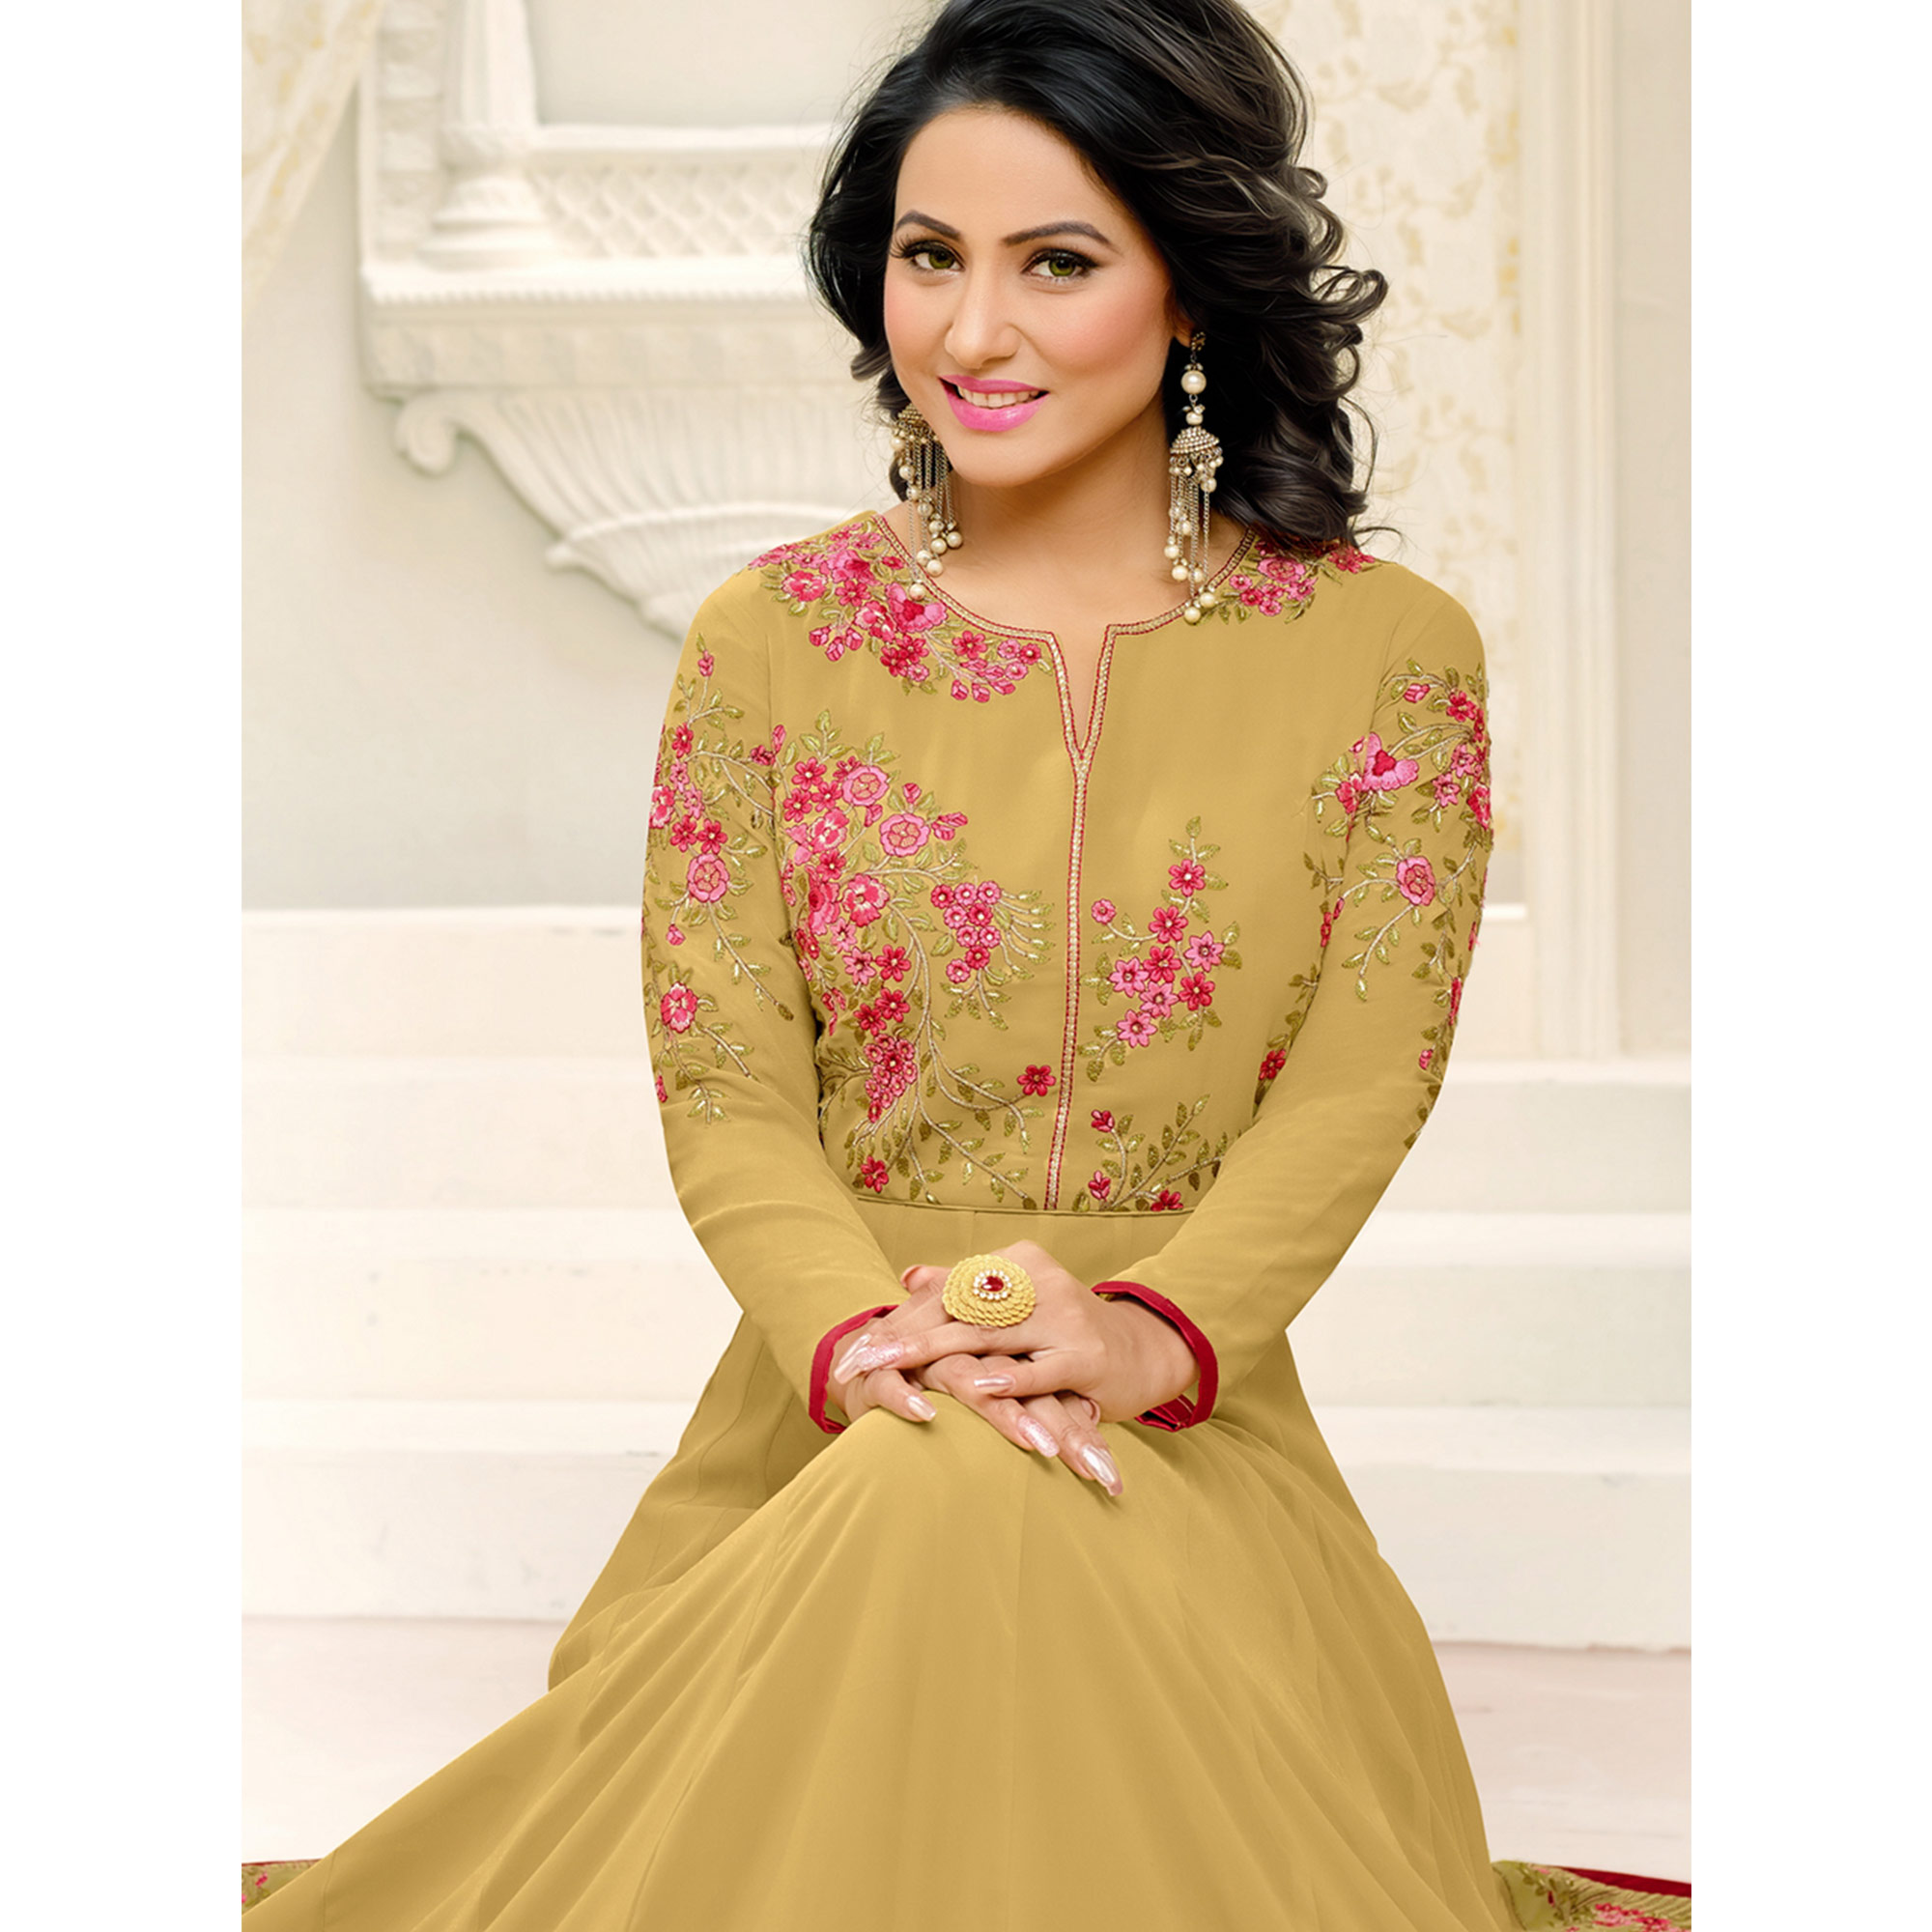 Sensational Golden Yellow Colored Party Wear Embroidered Georgette Anarkali Suit